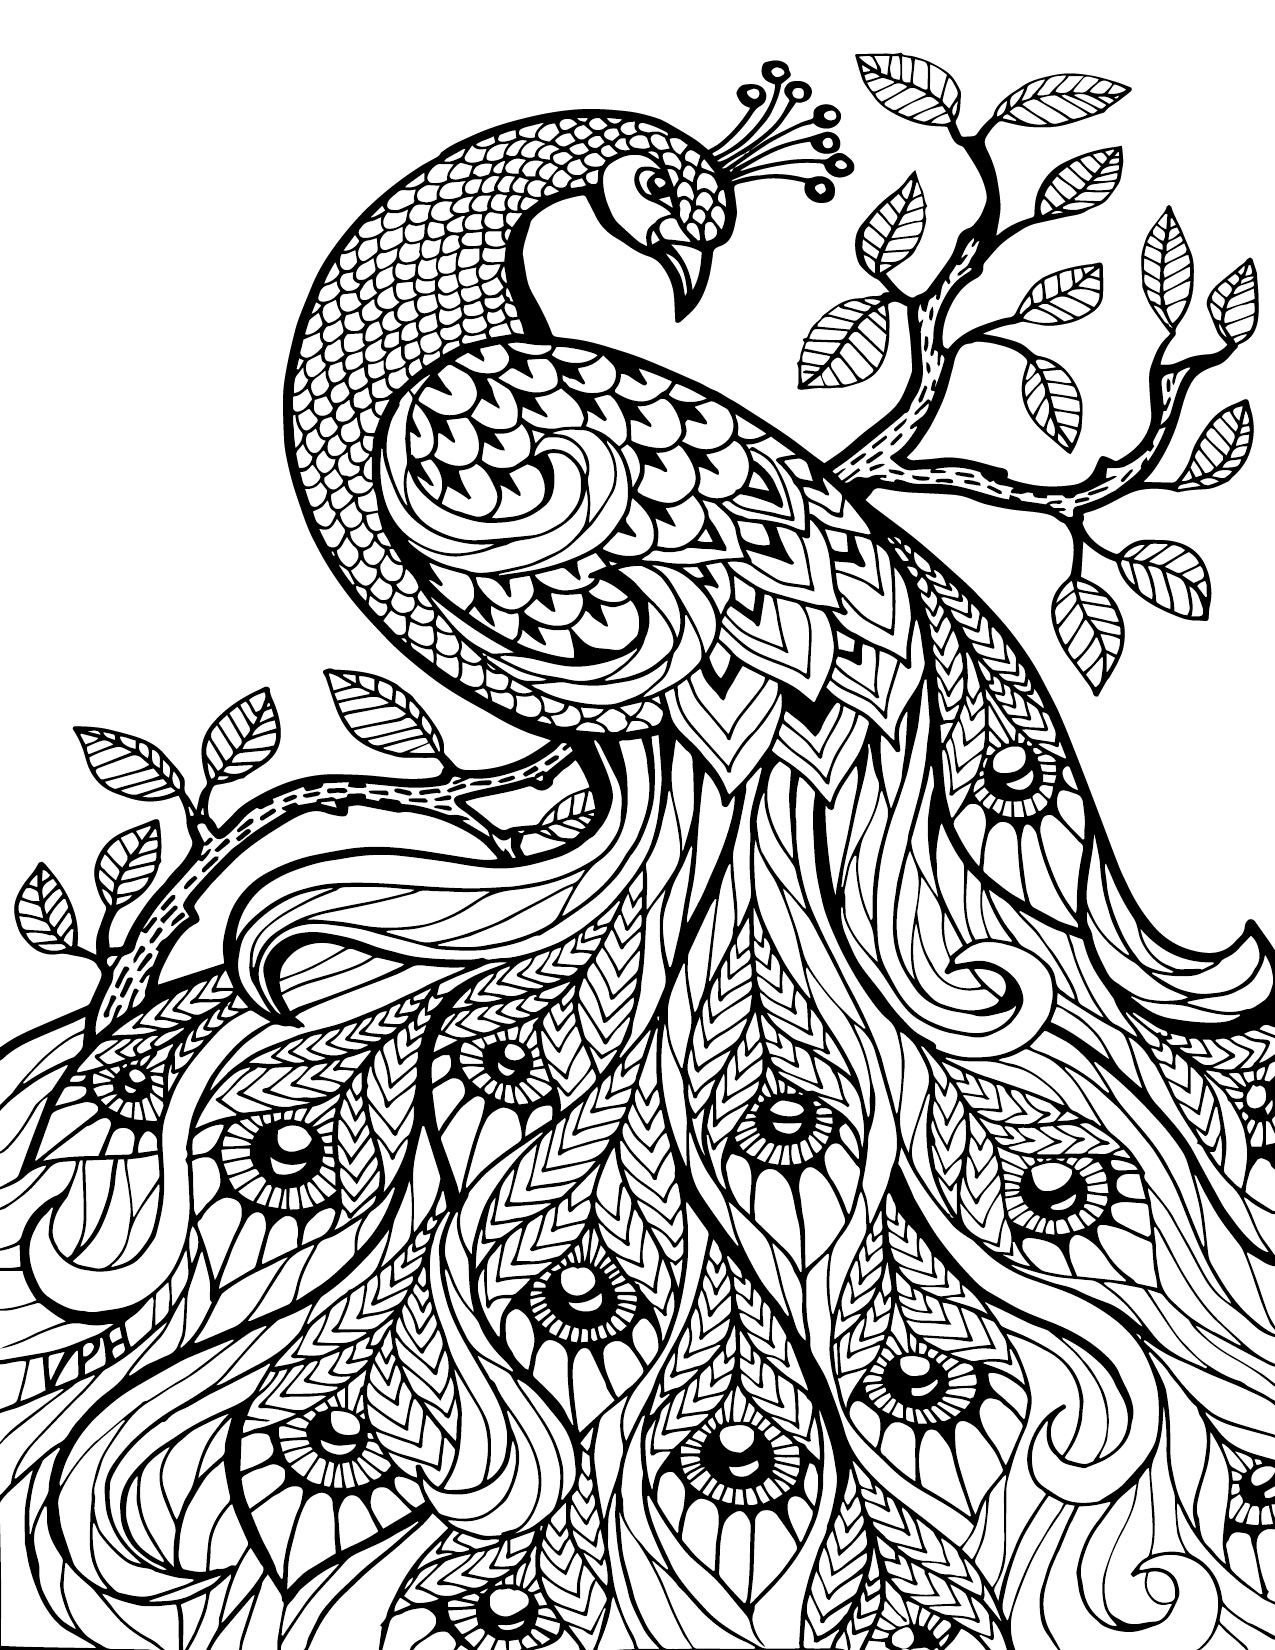 Free download adult coloring pages Coloring book for adults free download